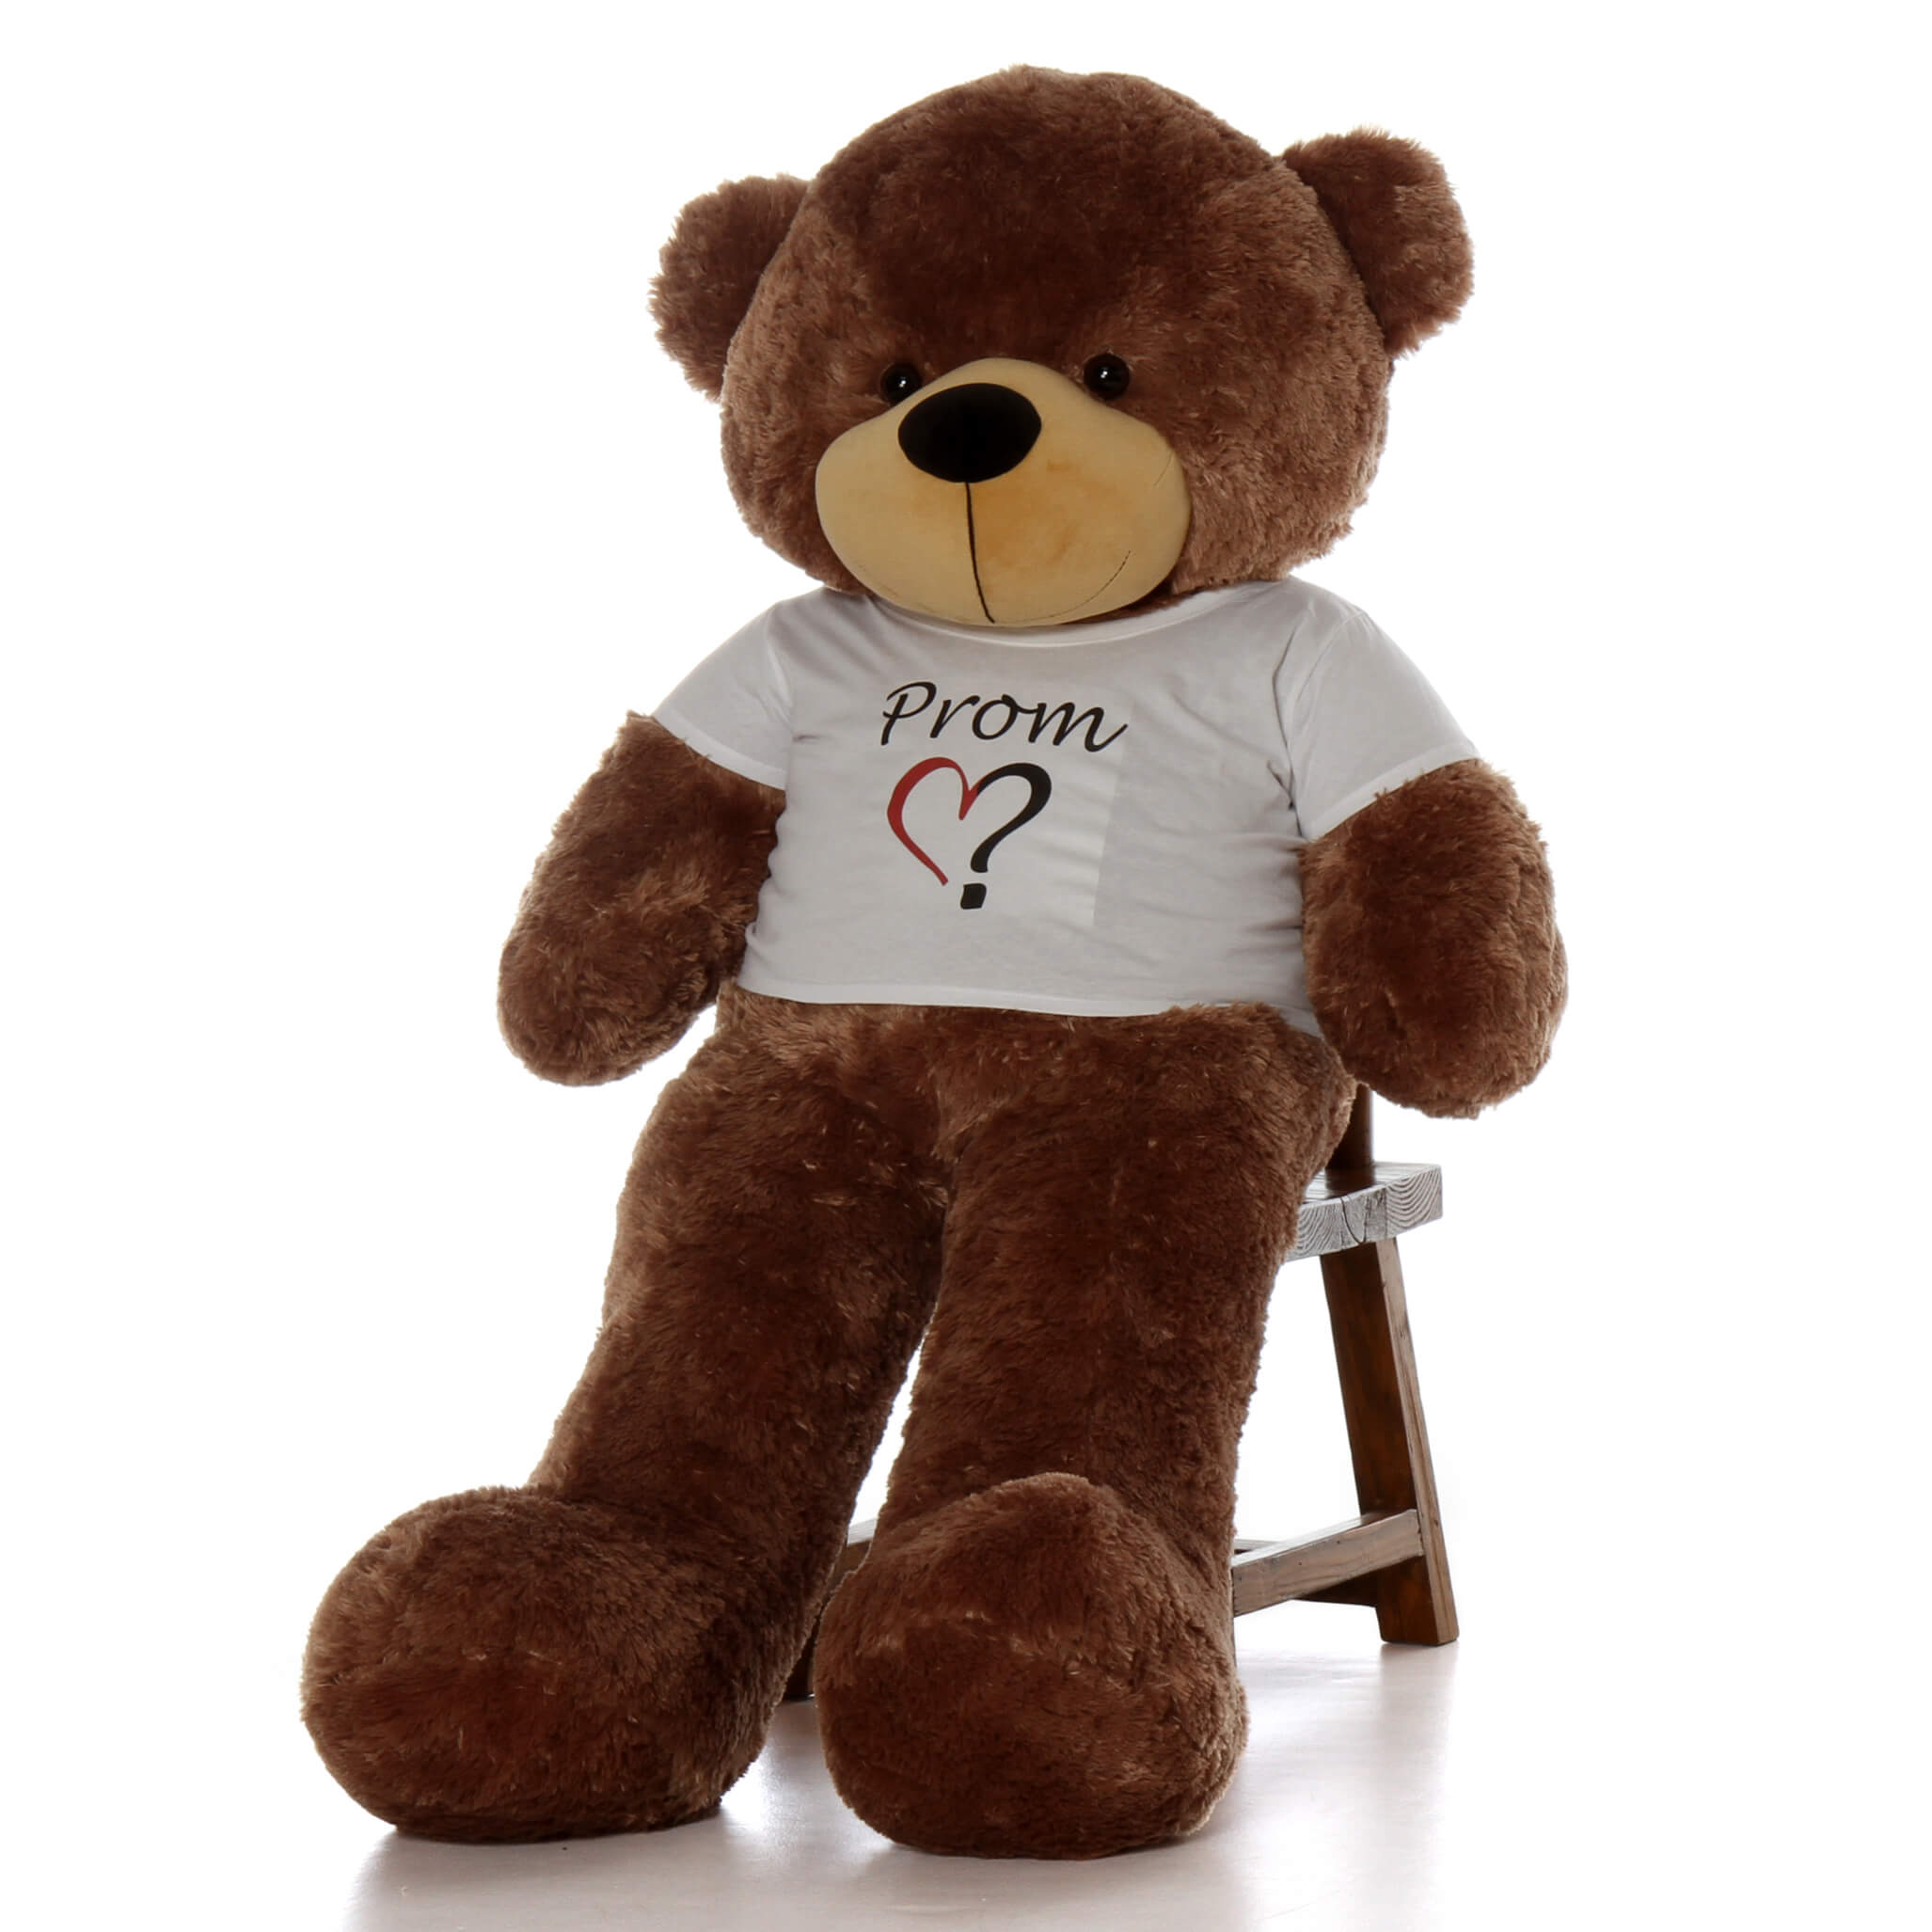 5ft-mocha-brown-teddy-bear-sunny-cuddles-in-a-heart-prom-shirt-1.jpg